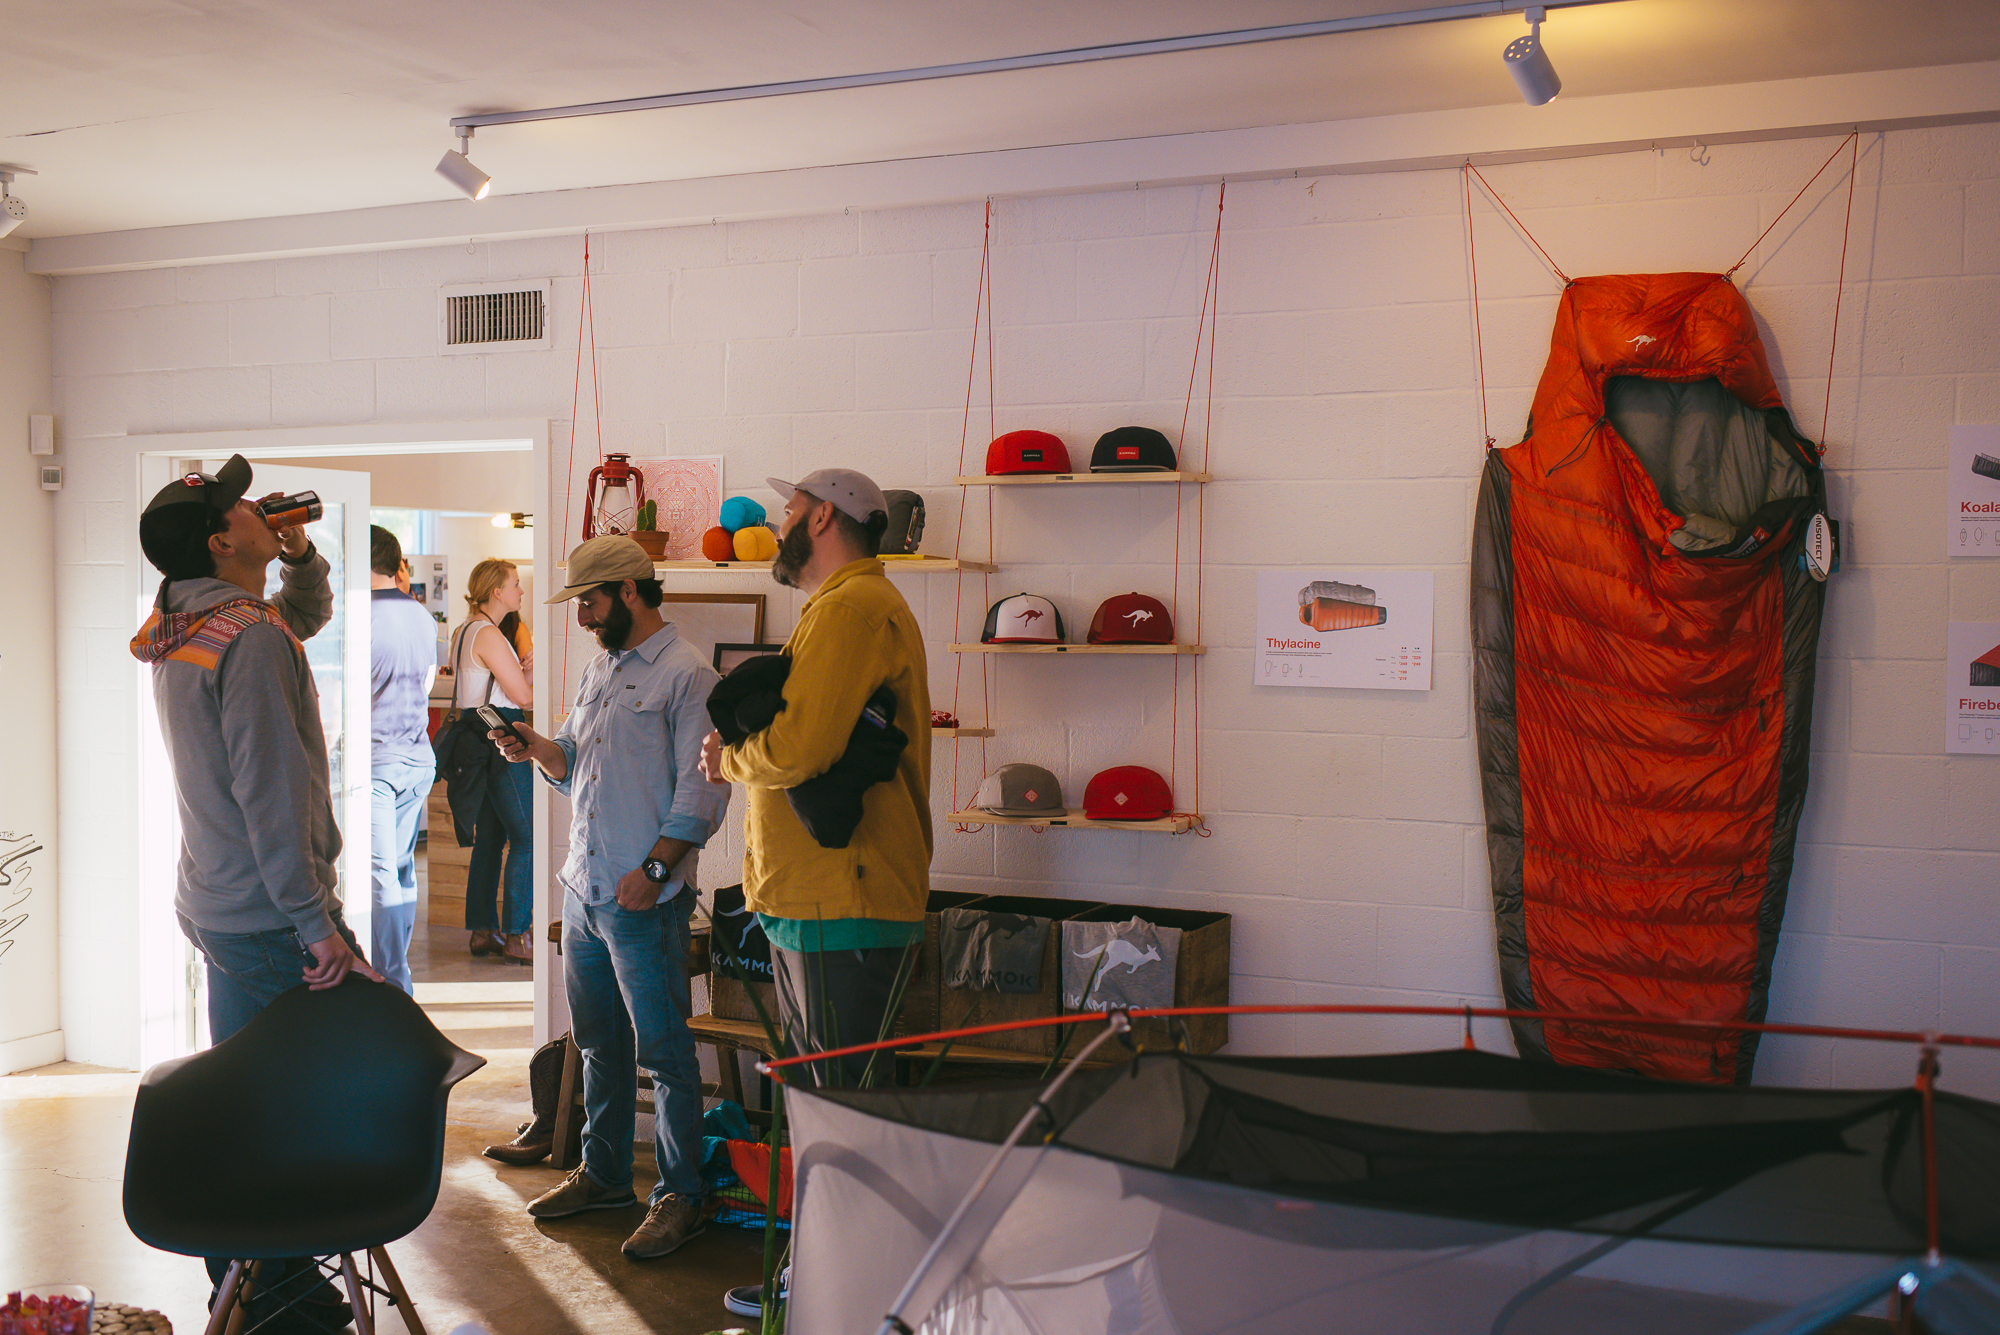 Kammok Gear Shop debut, swing by this week from 11-6 pm!